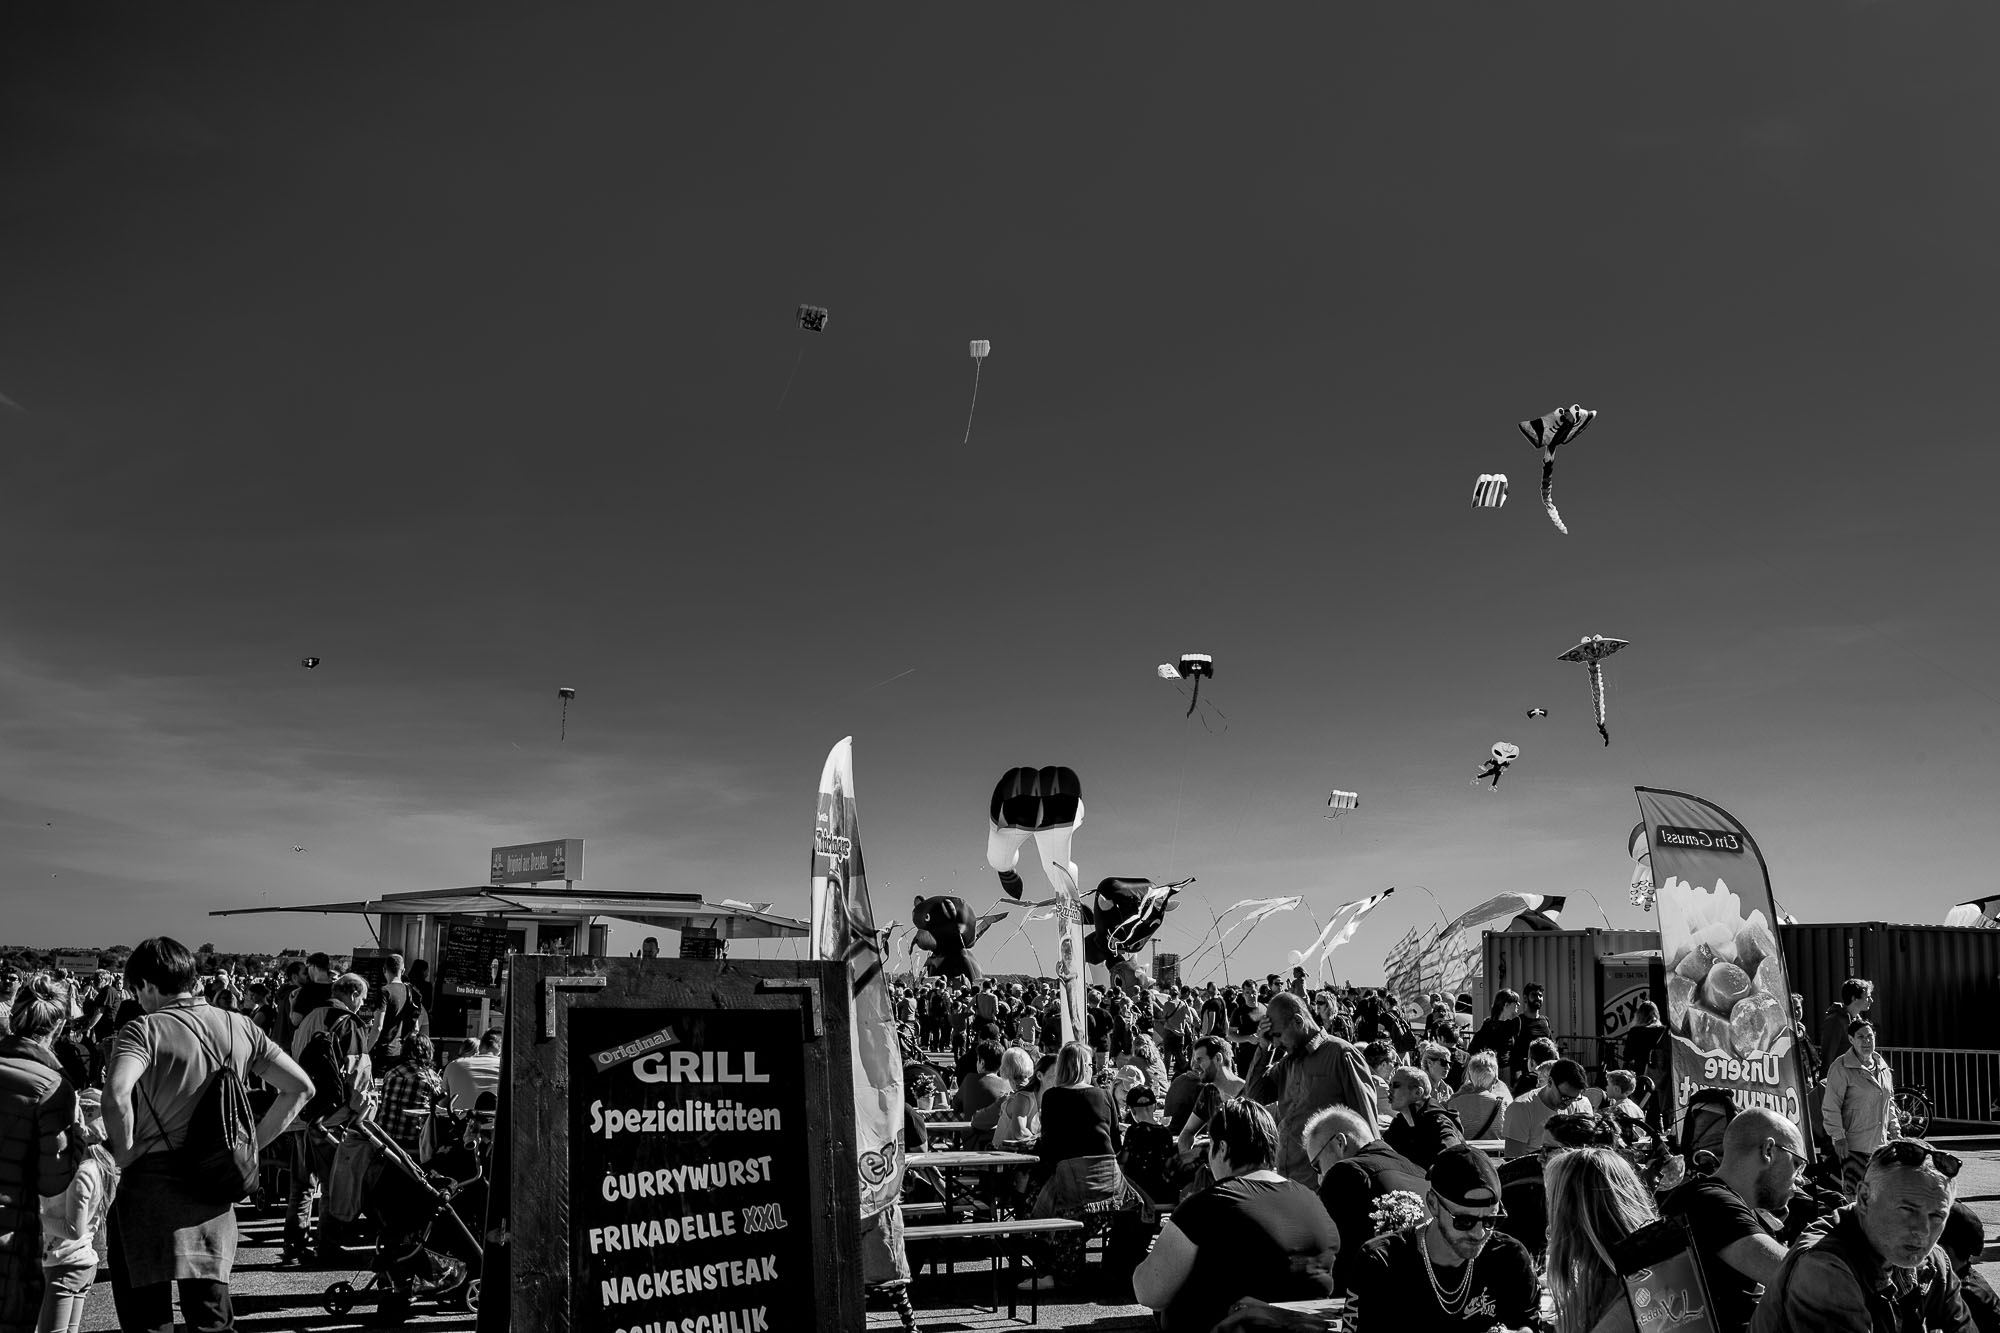 Kites in the sky above, people at tables having lunch below